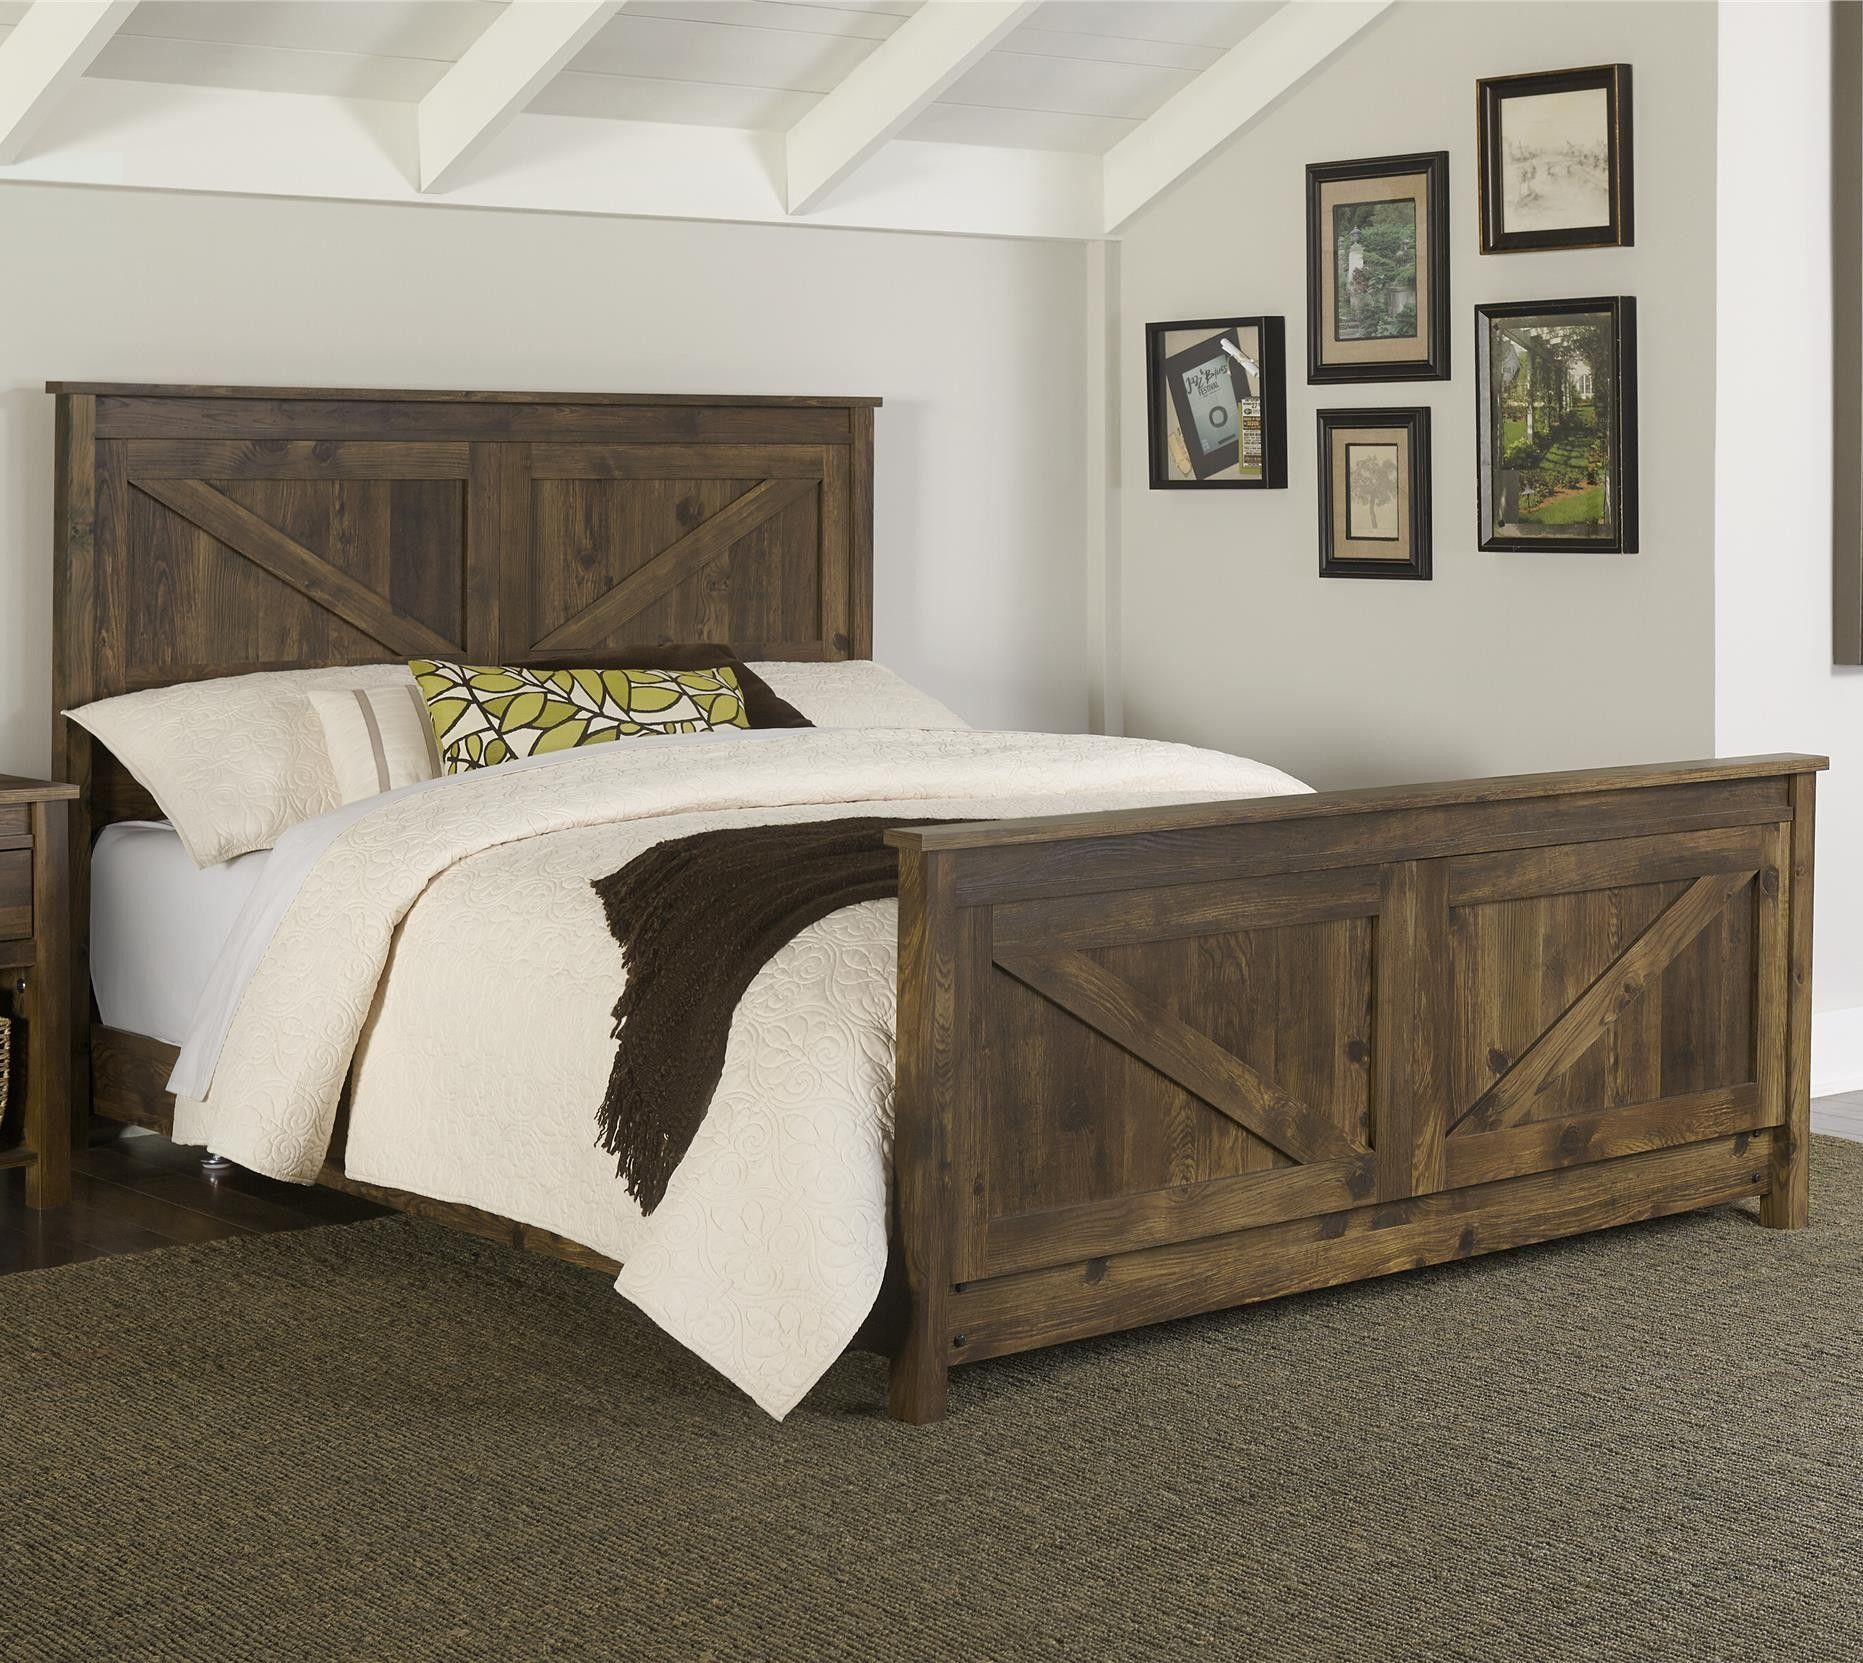 Farmington Queen Panel Bed | The house | Pinterest | Beds online ...